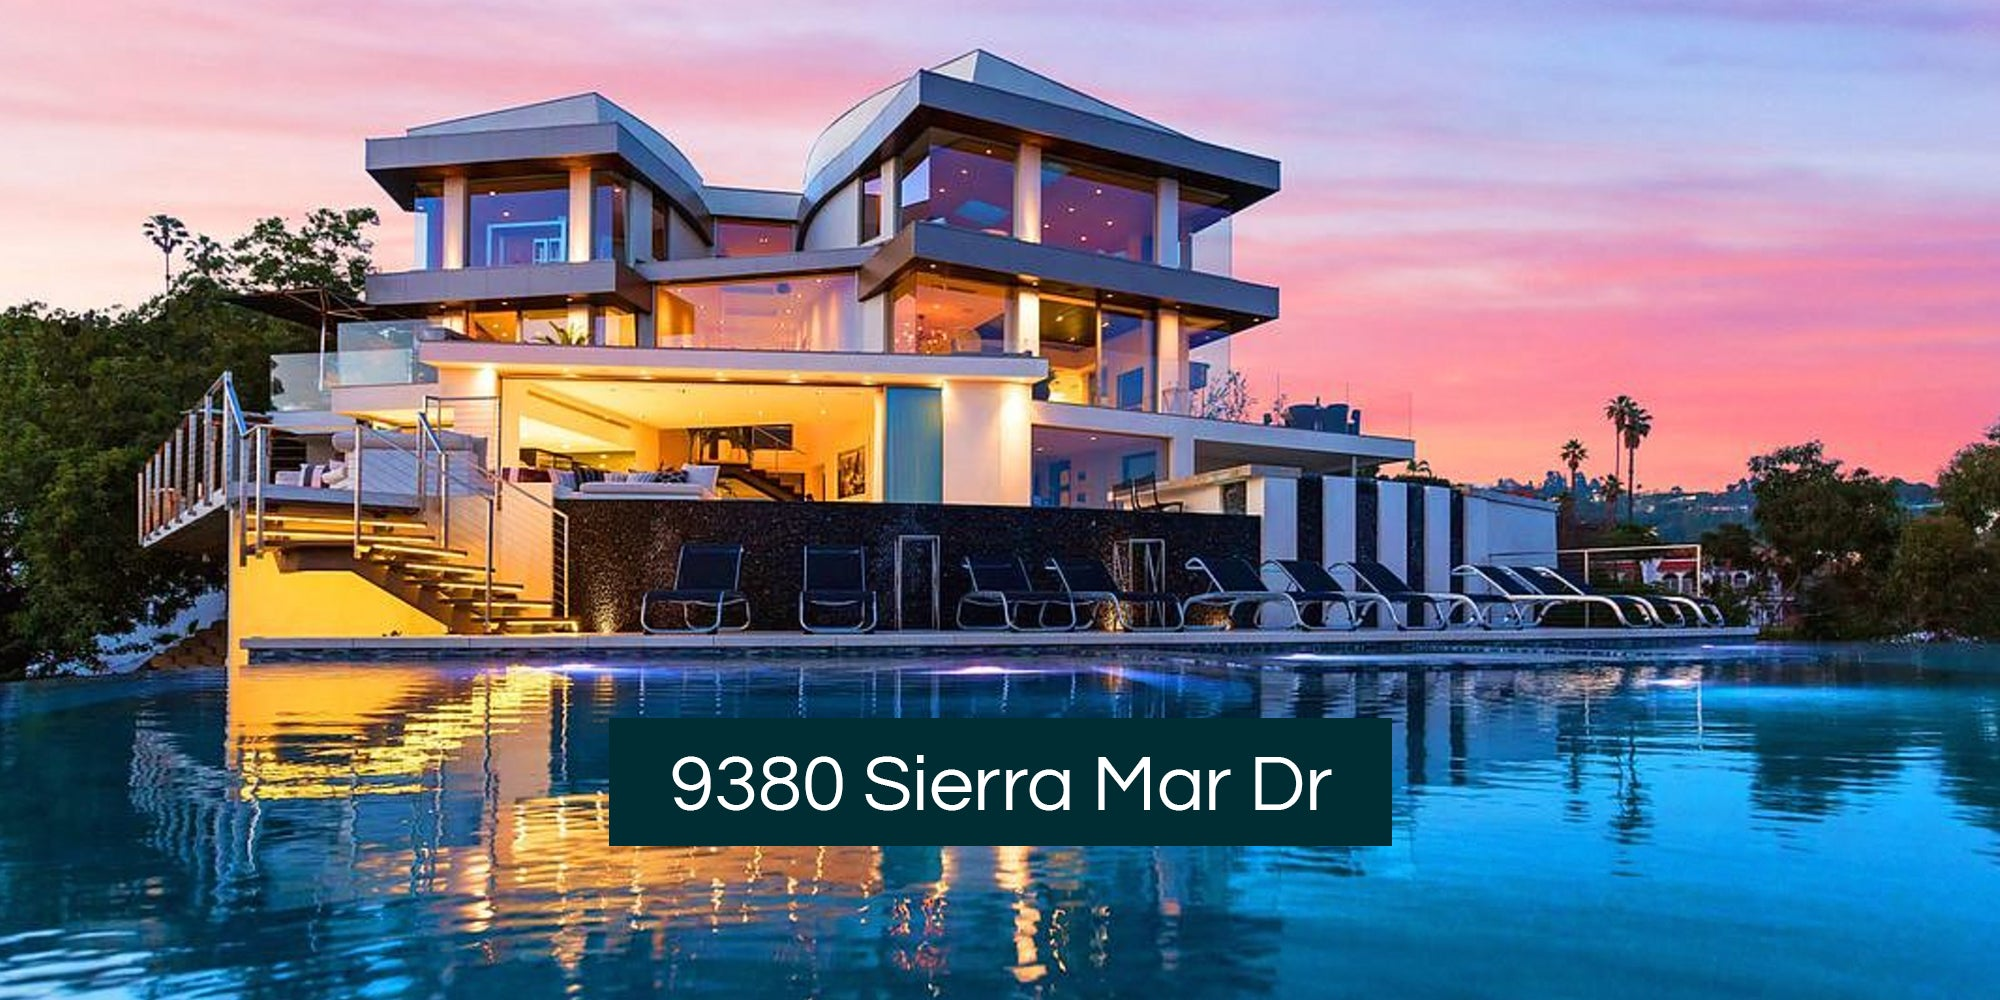 9380 Sierra Mar Dr - Los Angeles, CA 90069